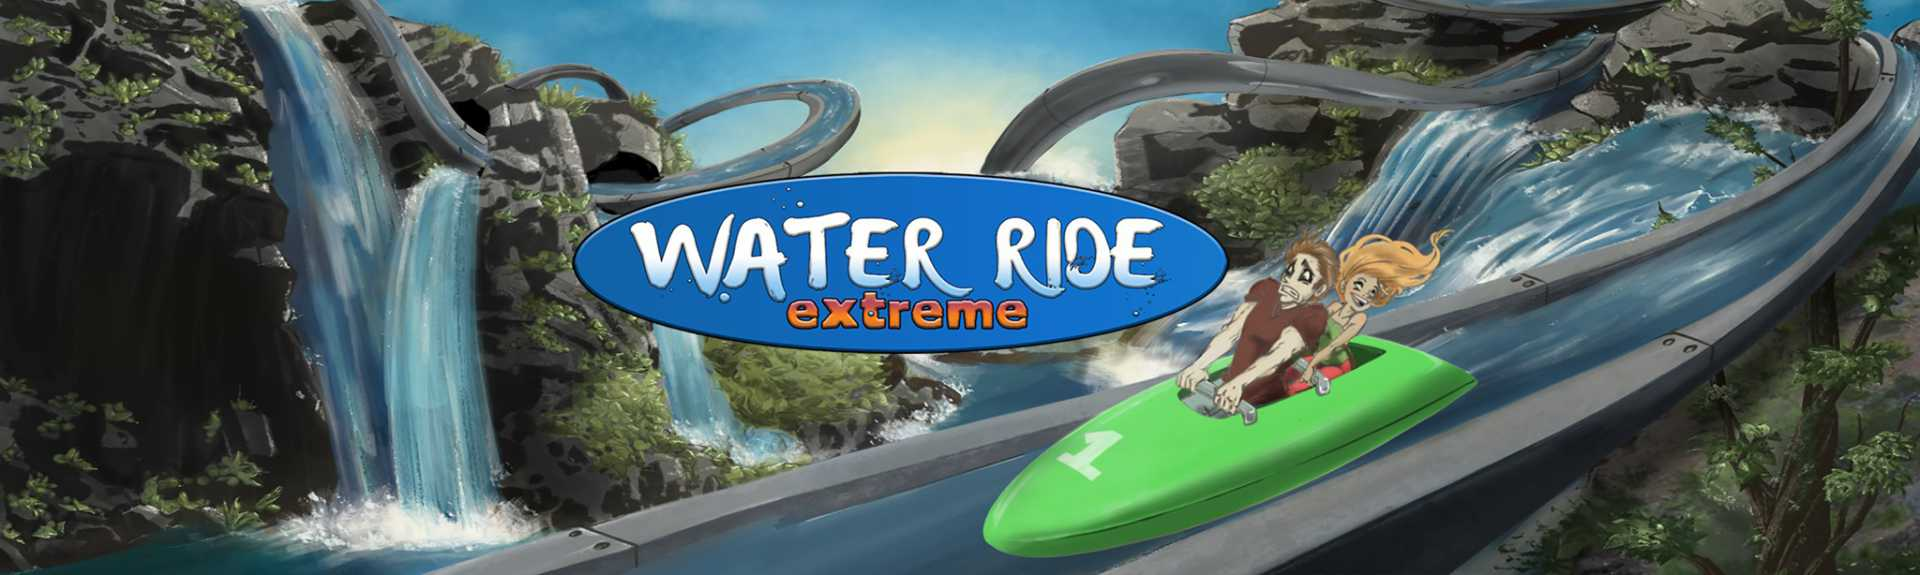 Water Ride Extreme